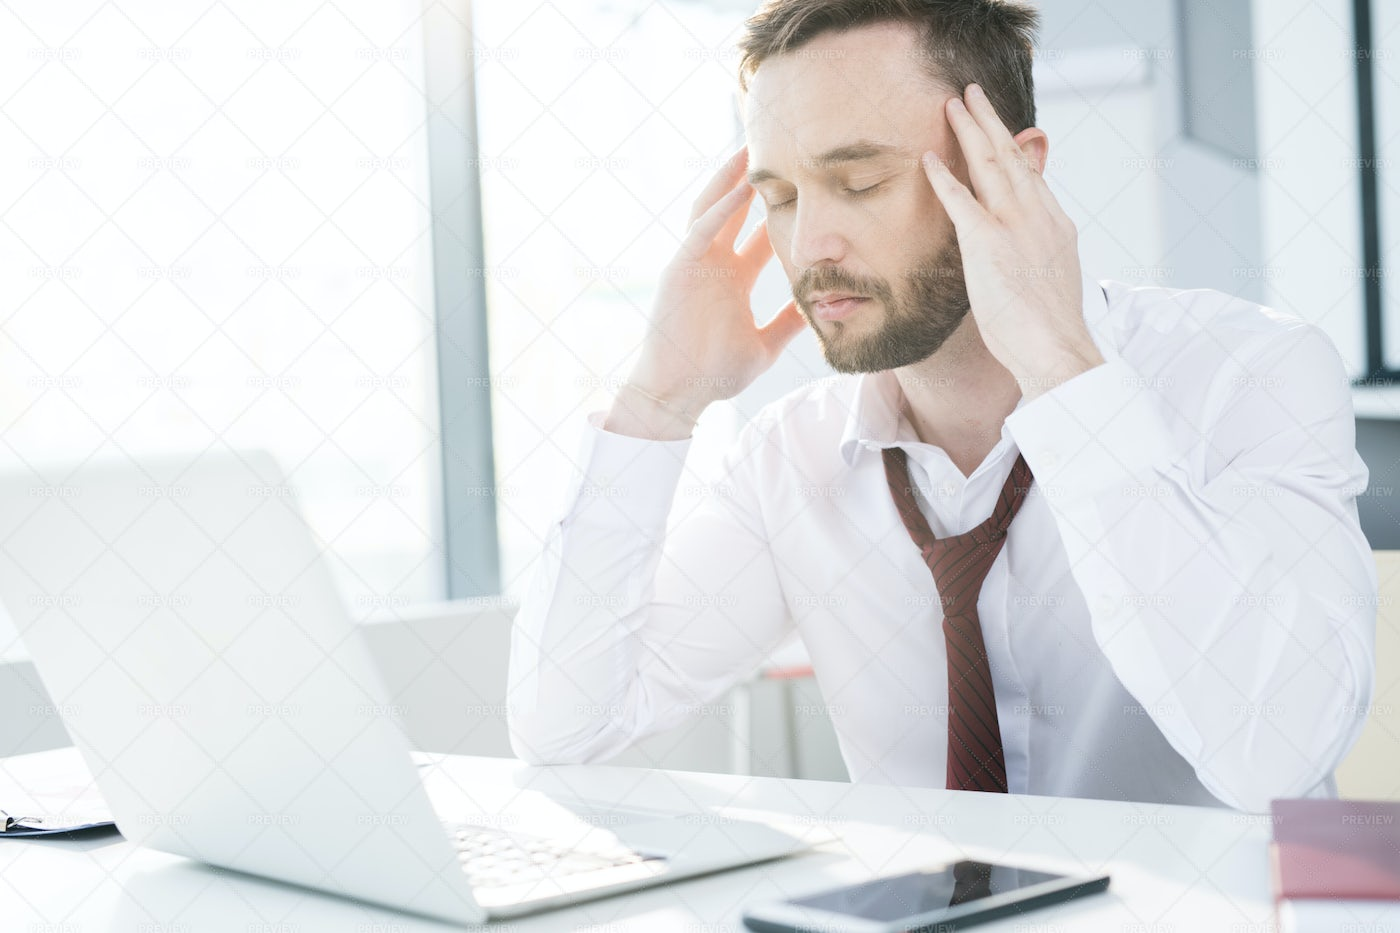 Exhausted Businessman Working: Stock Photos